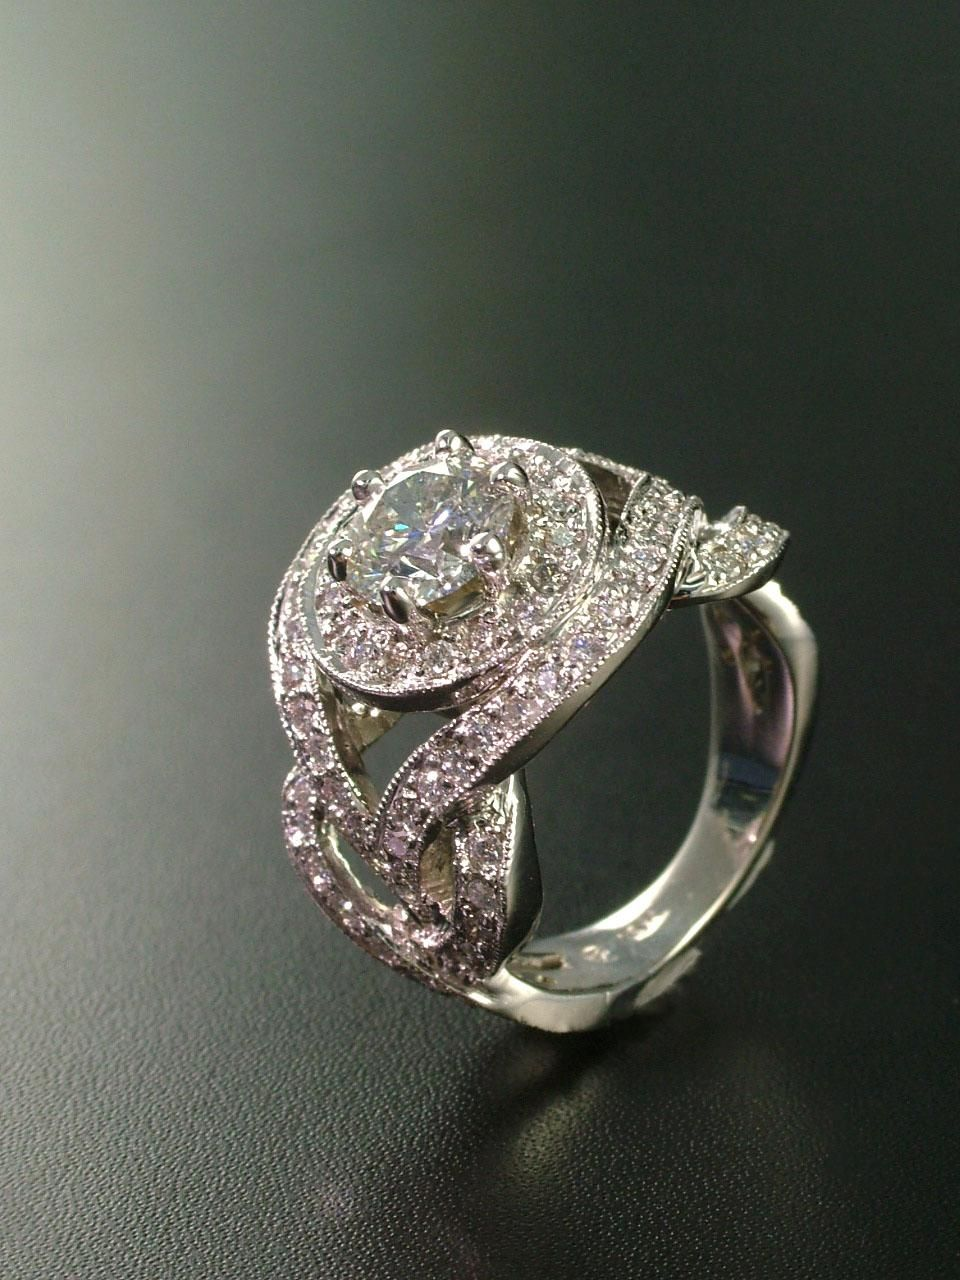 Custom engagement ring with halo and braided band set in white gold